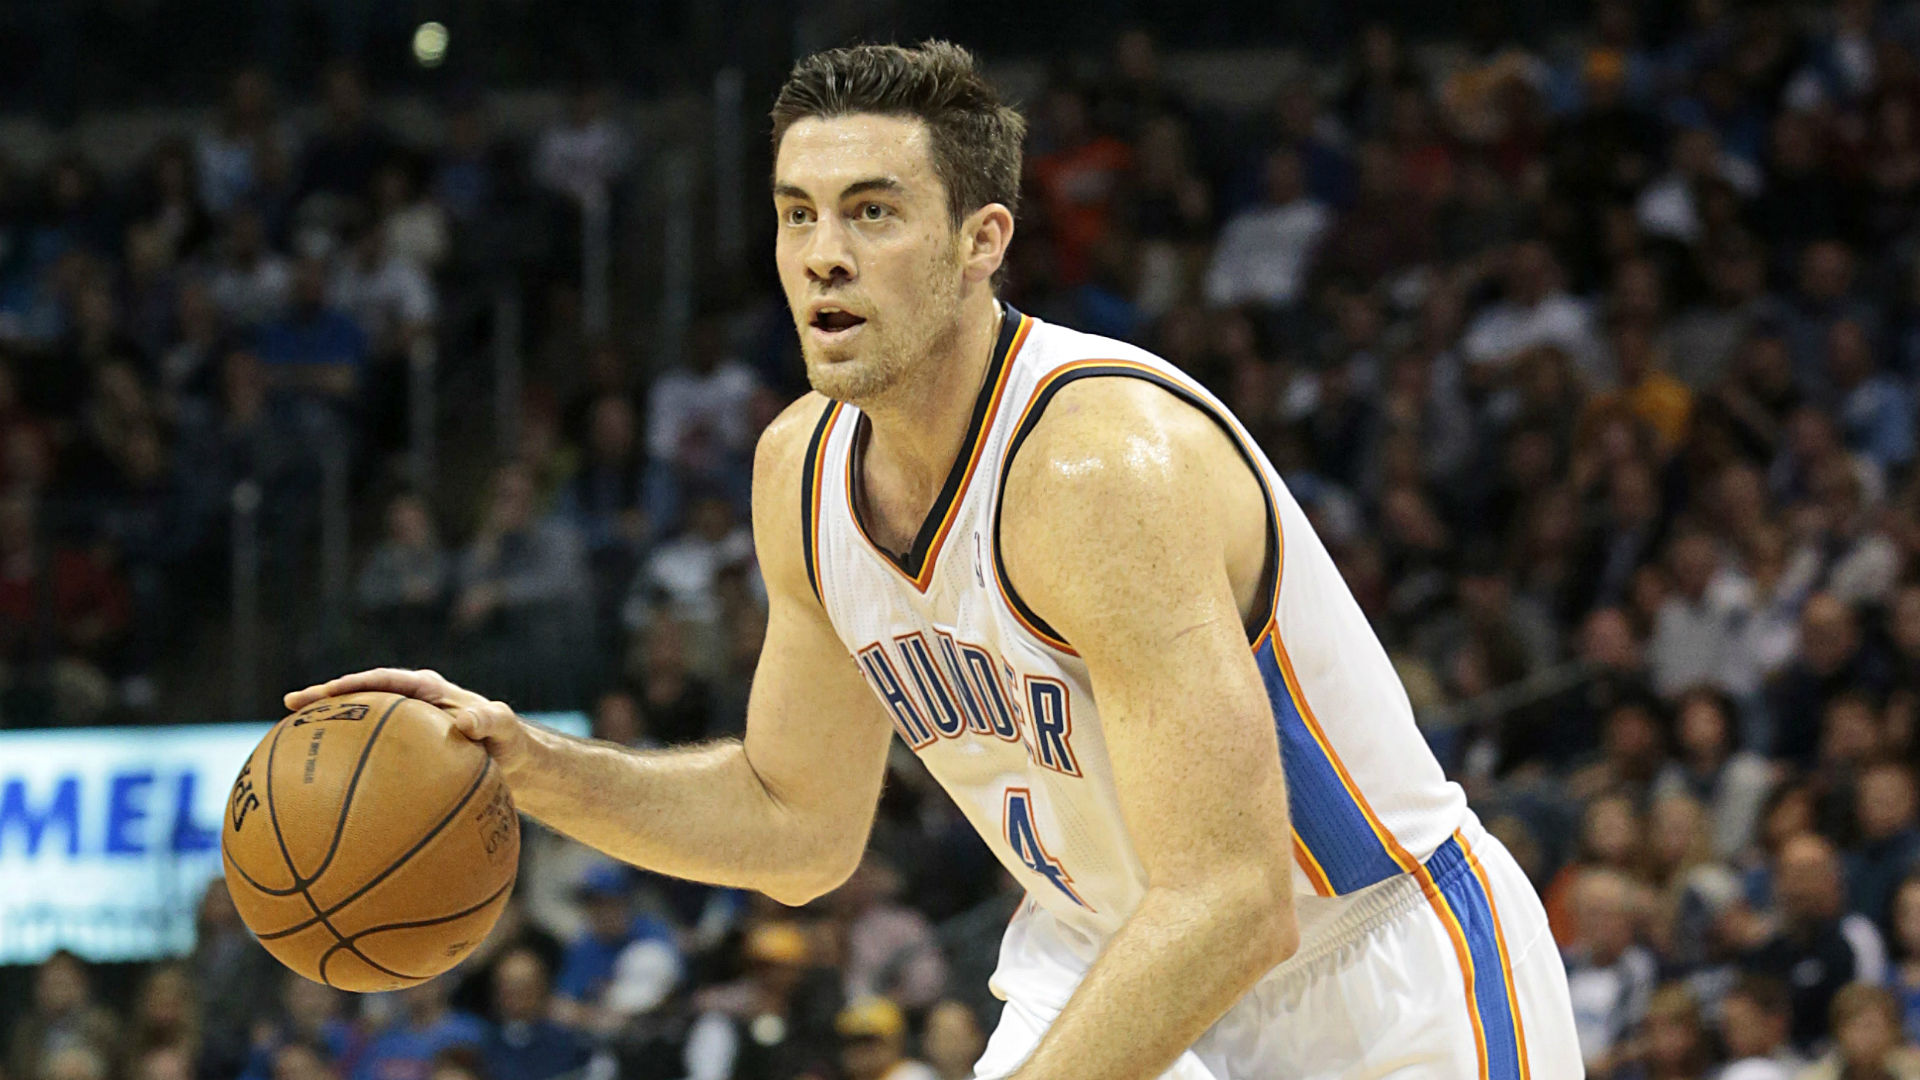 Nick Collison Ethnicity, Race, and Nationality